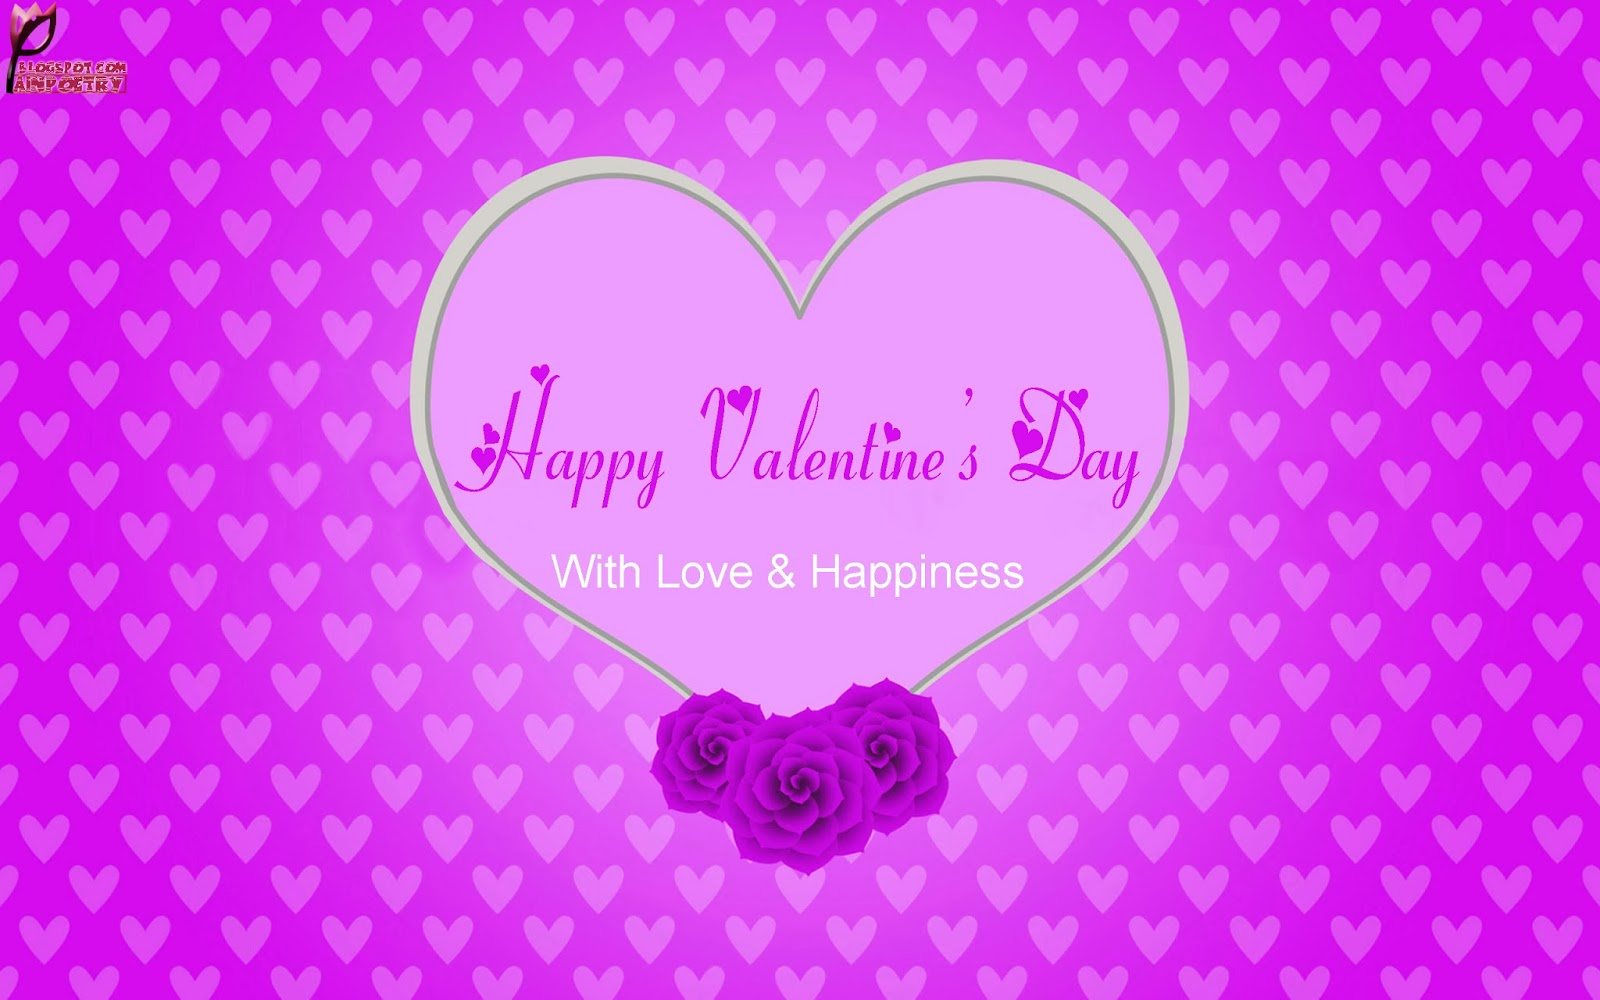 Valentines day quotes for the workplace valentines day wikipedia the